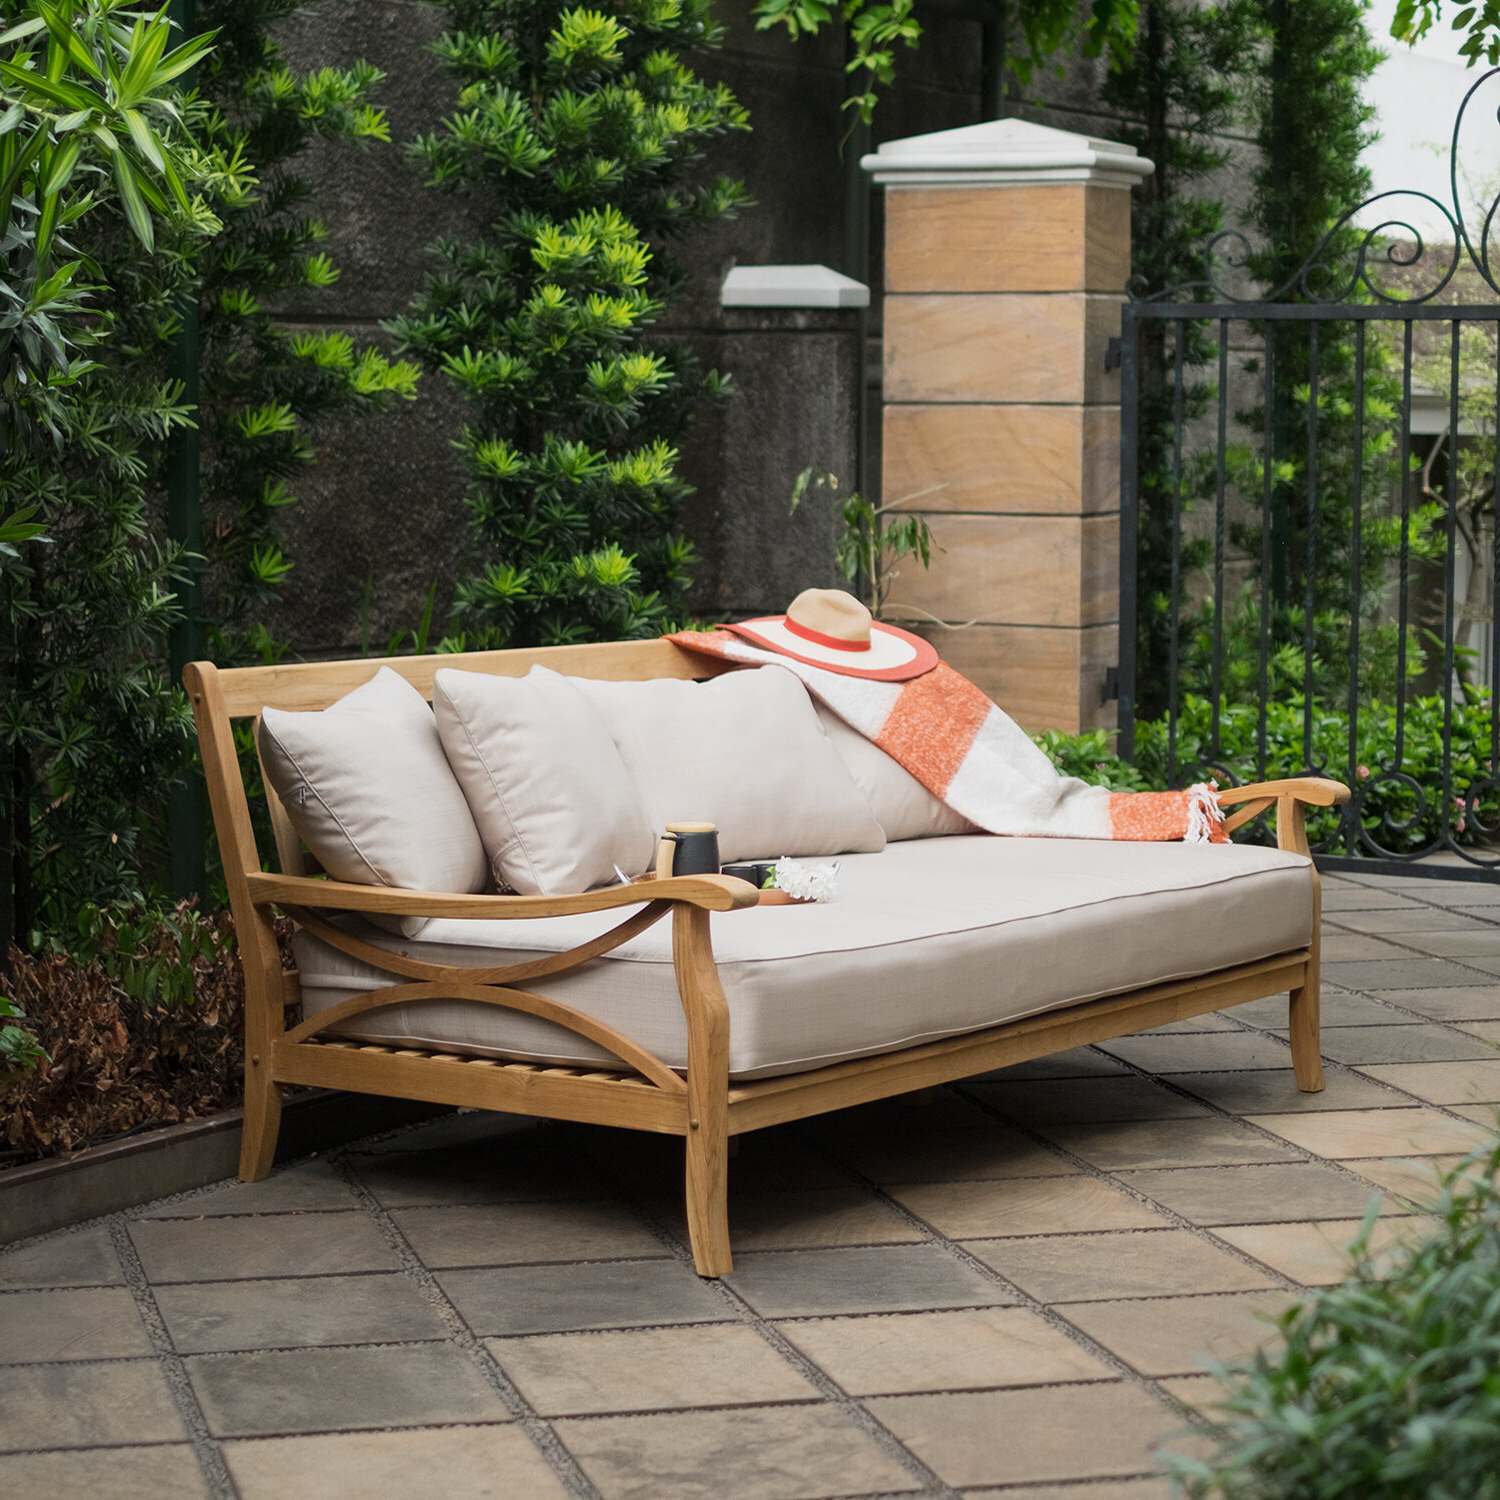 Best And Newest Brunswick Teak Patio Daybed With Cushions Regarding Roush Teak Patio Daybeds With Cushions (View 2 of 20)